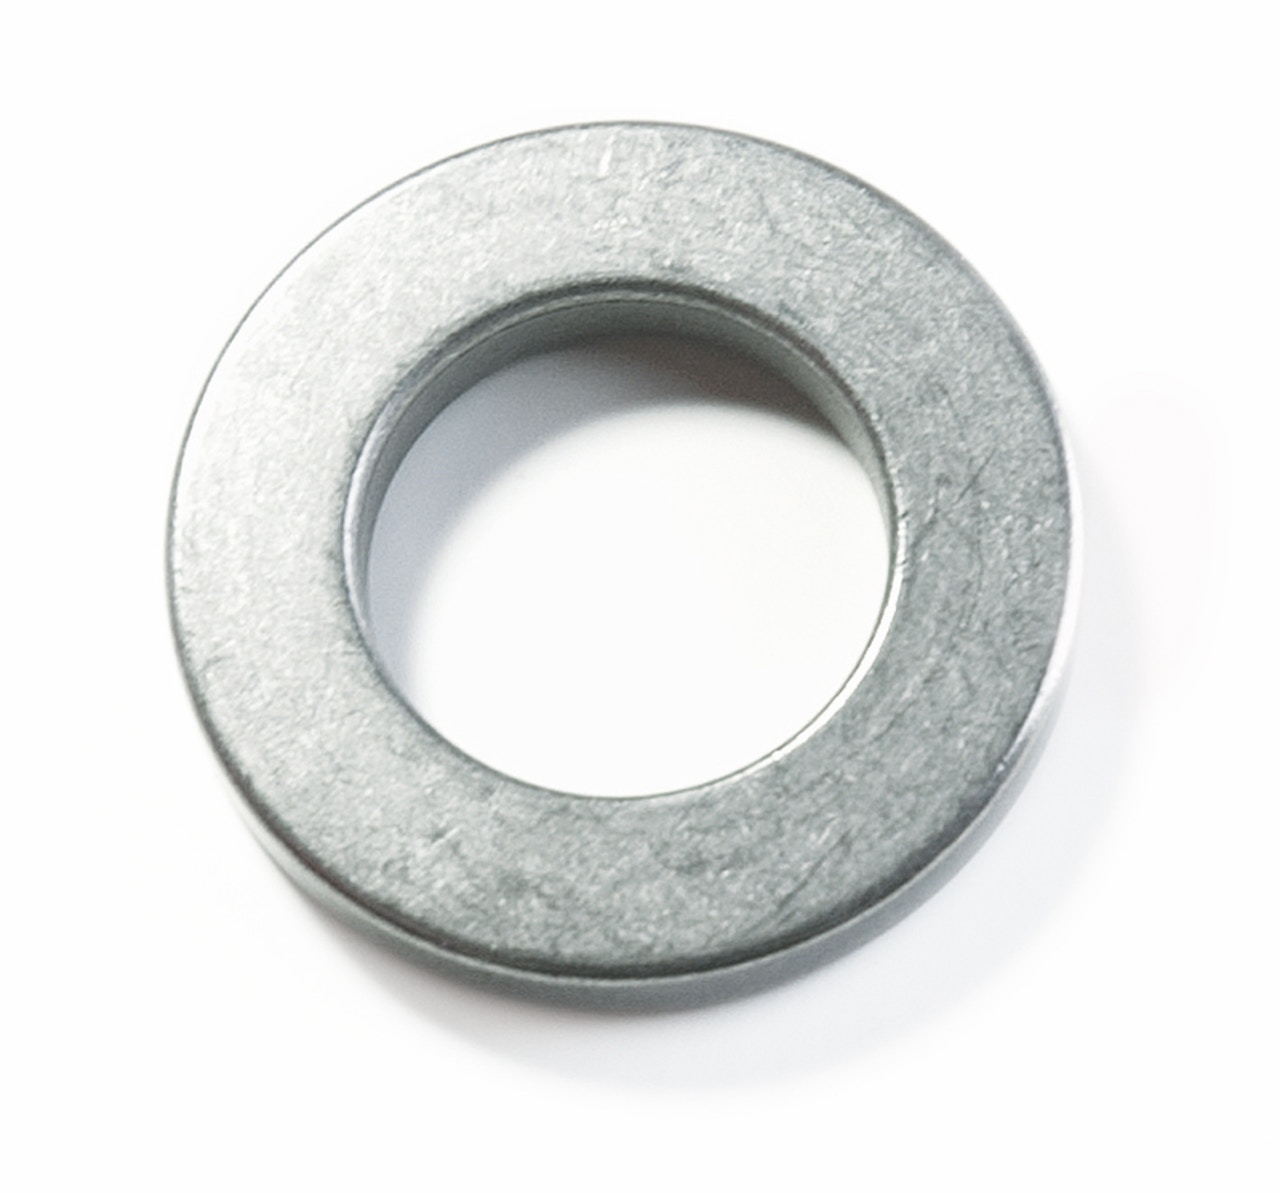 MW Components - NDS-series disc spring